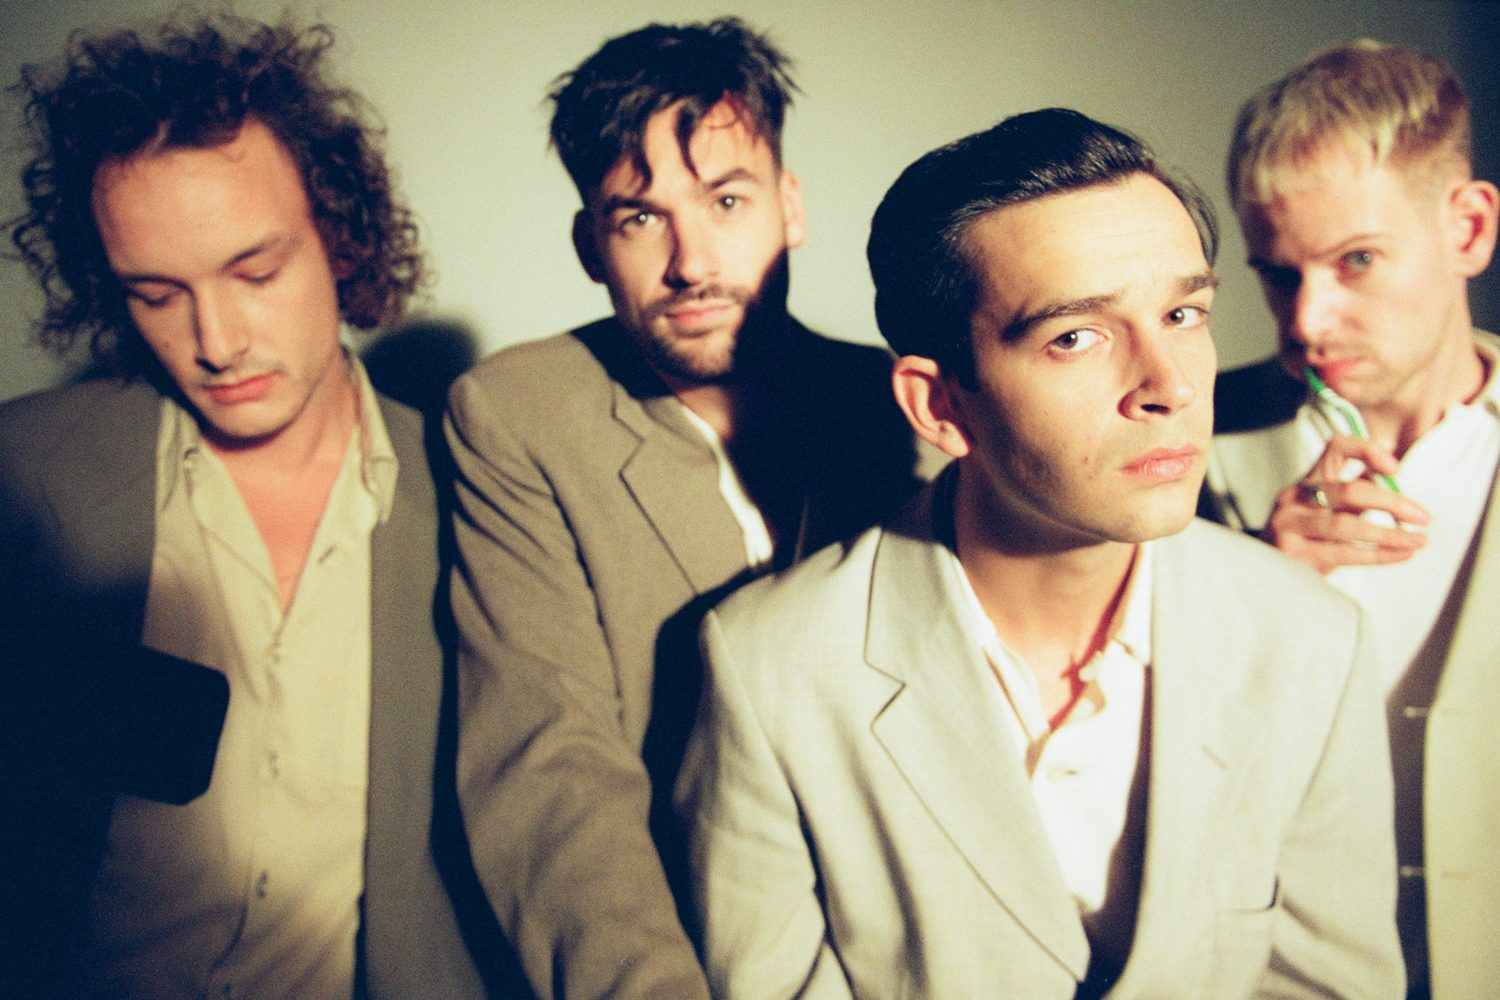 The next track from The 1975 is coming next week | Dork